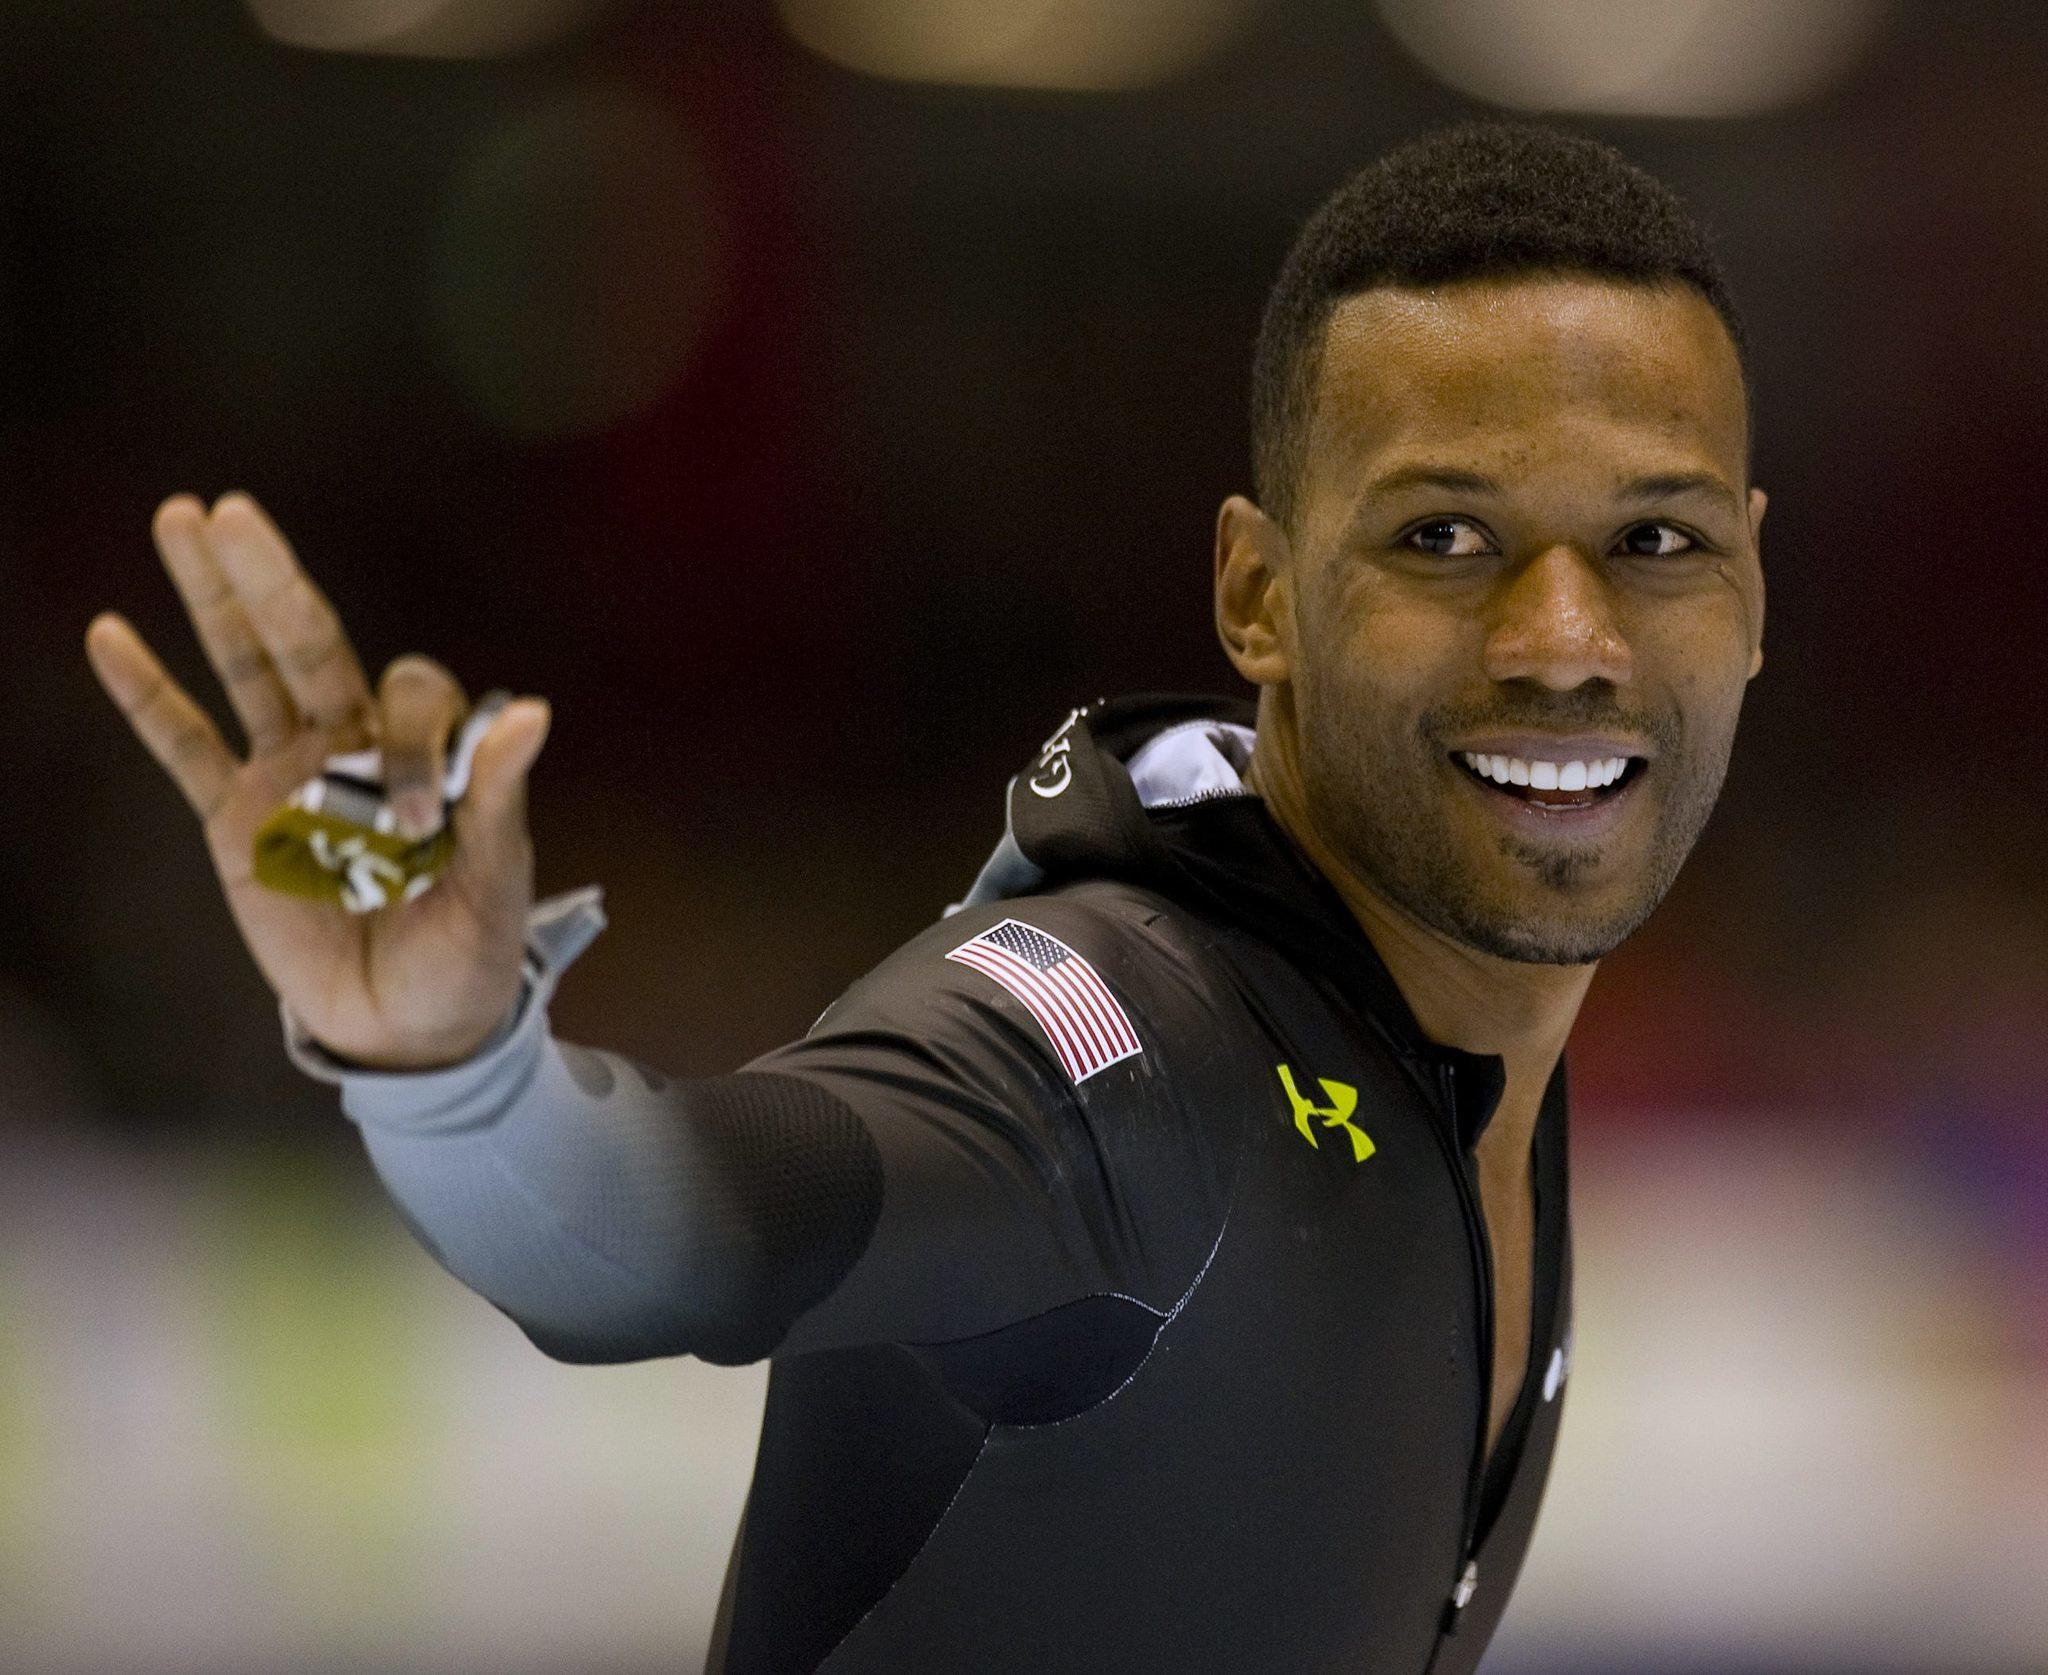 Shani Davis waves at the stands after his event. (Robin van Lonkhuijsen/Reuters Photo)